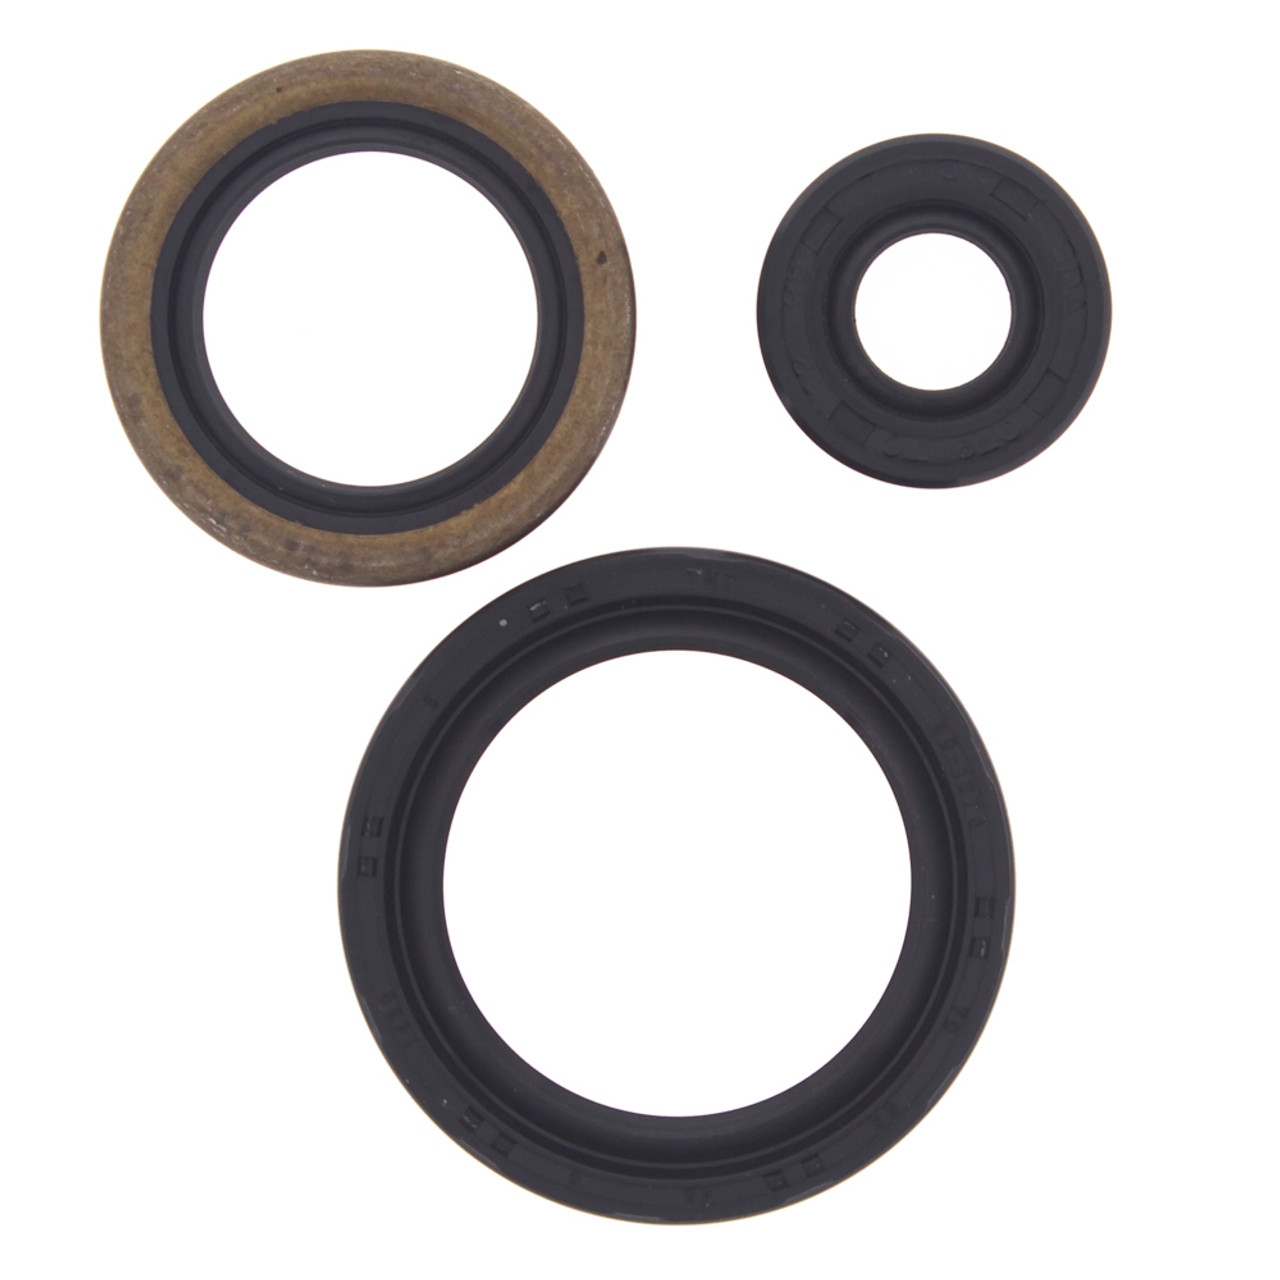 New Engine Oil Seal Kit Polaris Sportsman 400 HO 4x4 400cc 08 09 10 11 12  13 14